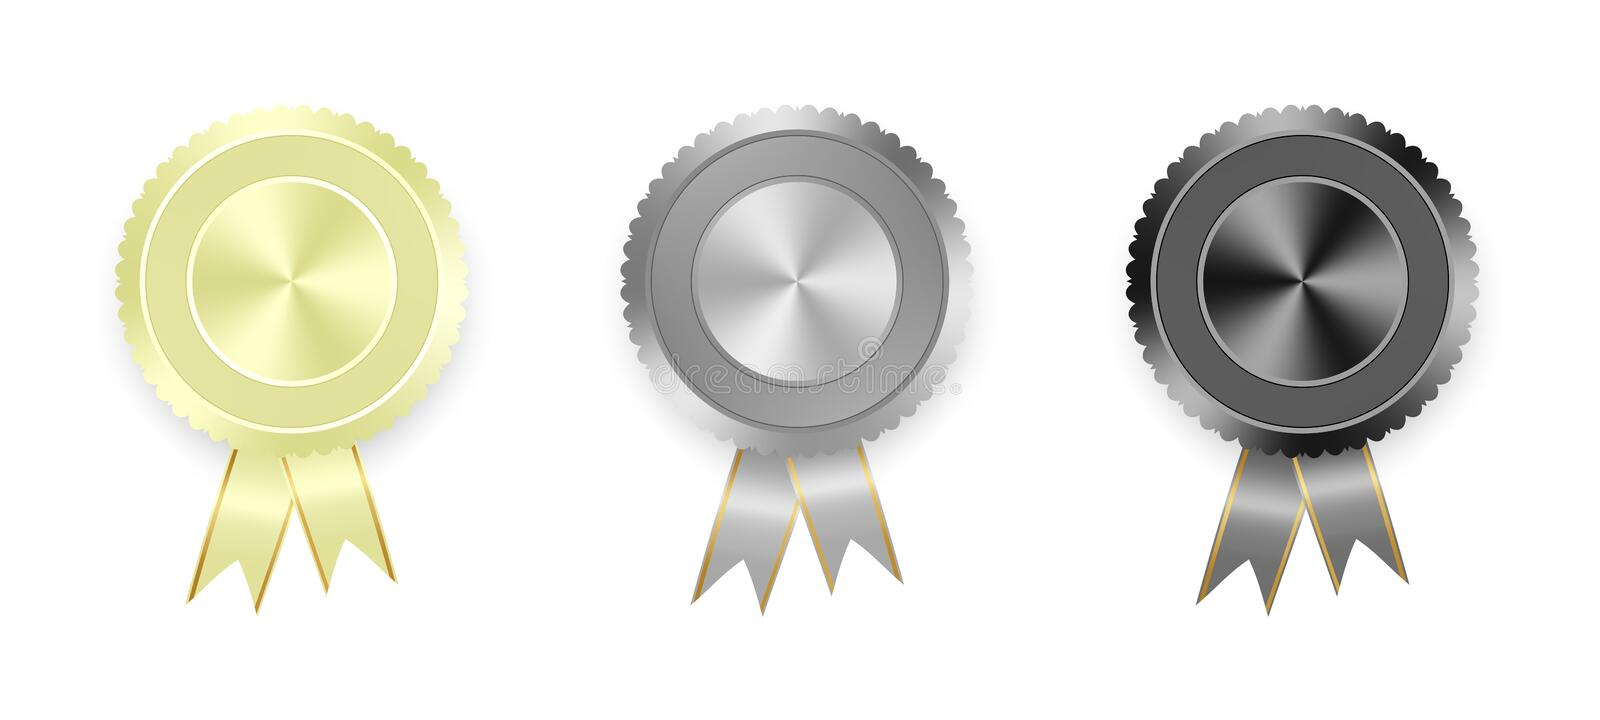 Set of labels white, gray and black with colored ribbons with gold ribbon on white background. Collection of world medals for winn stock illustration